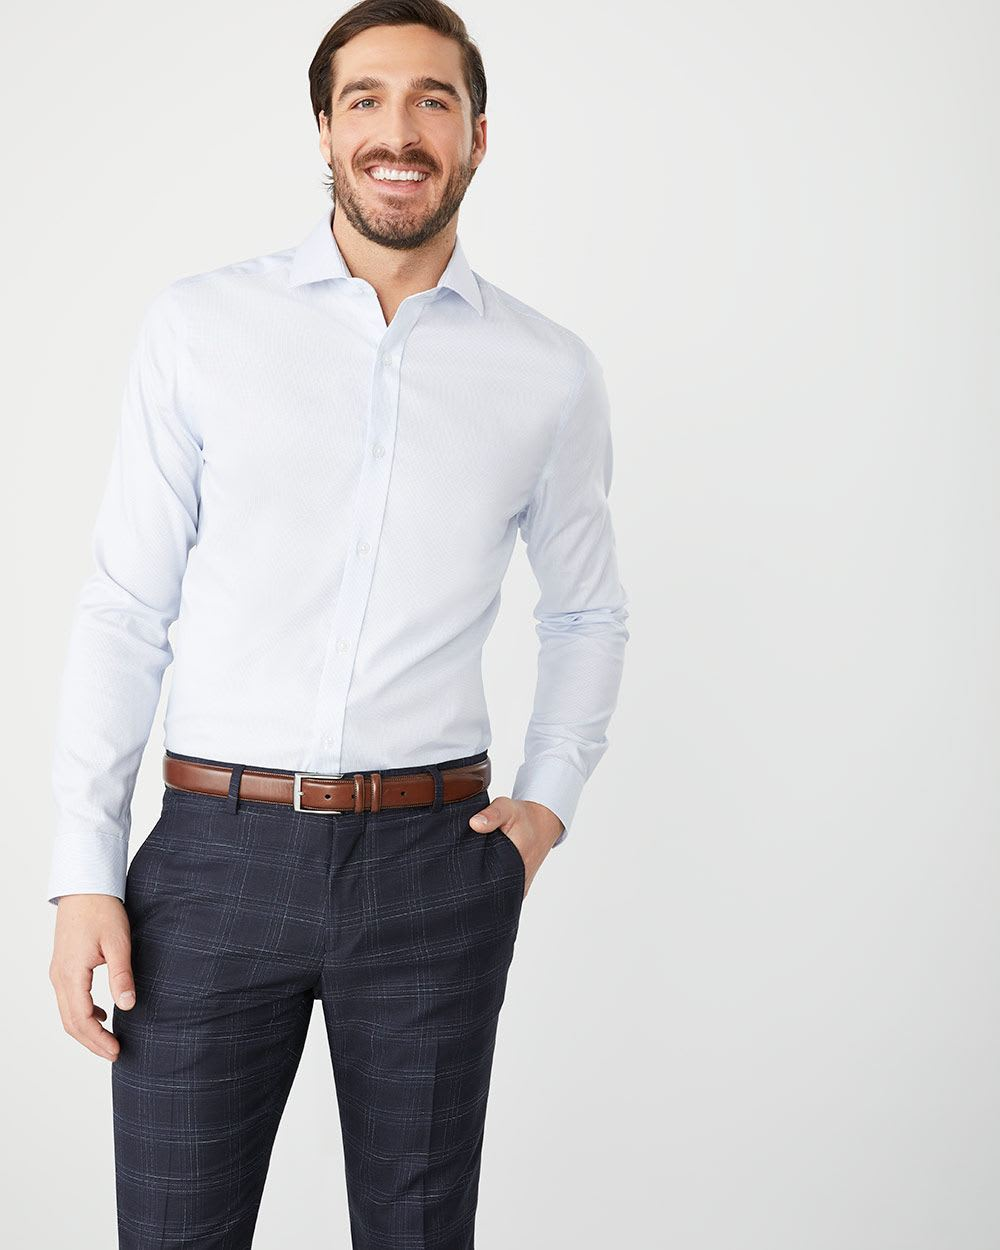 Tailored Fit tonal dress shirt